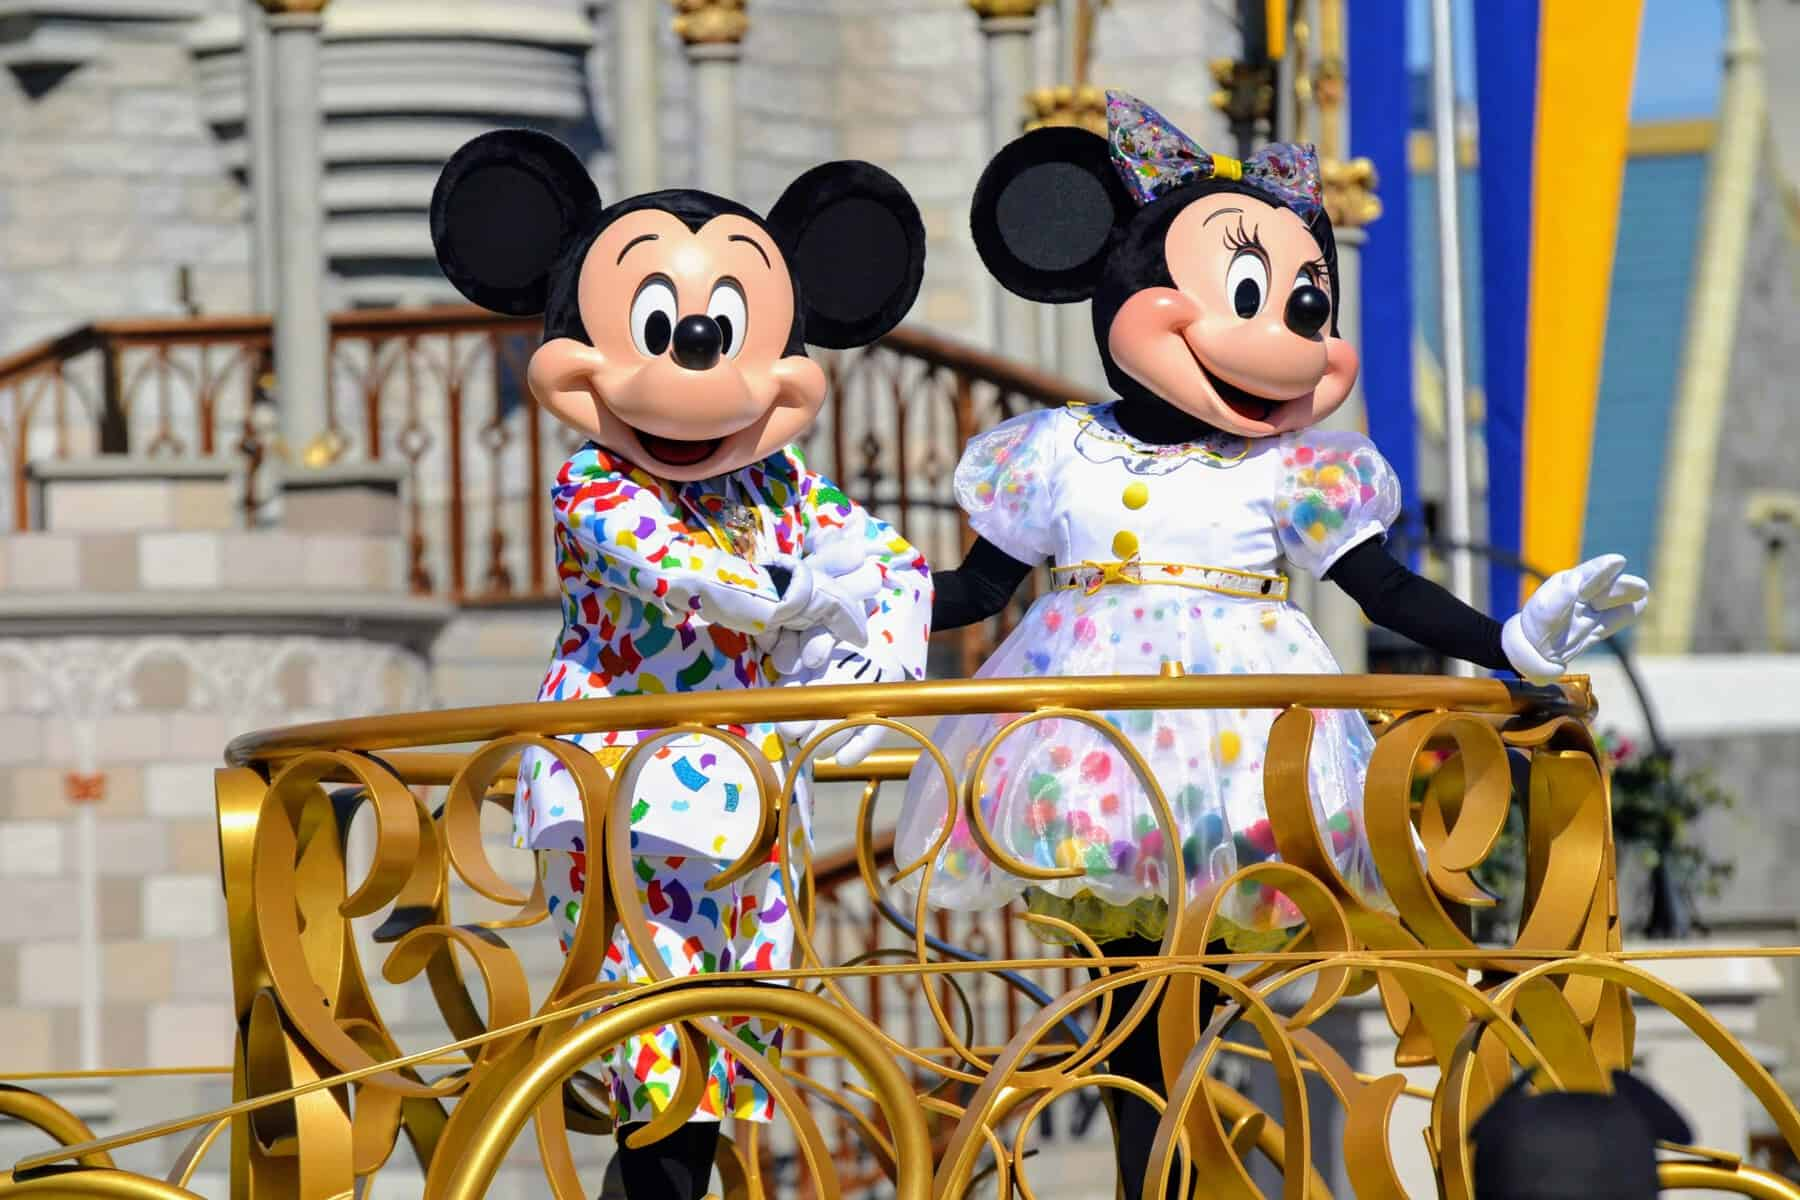 Mickey and Minnie in Move it, Shake it